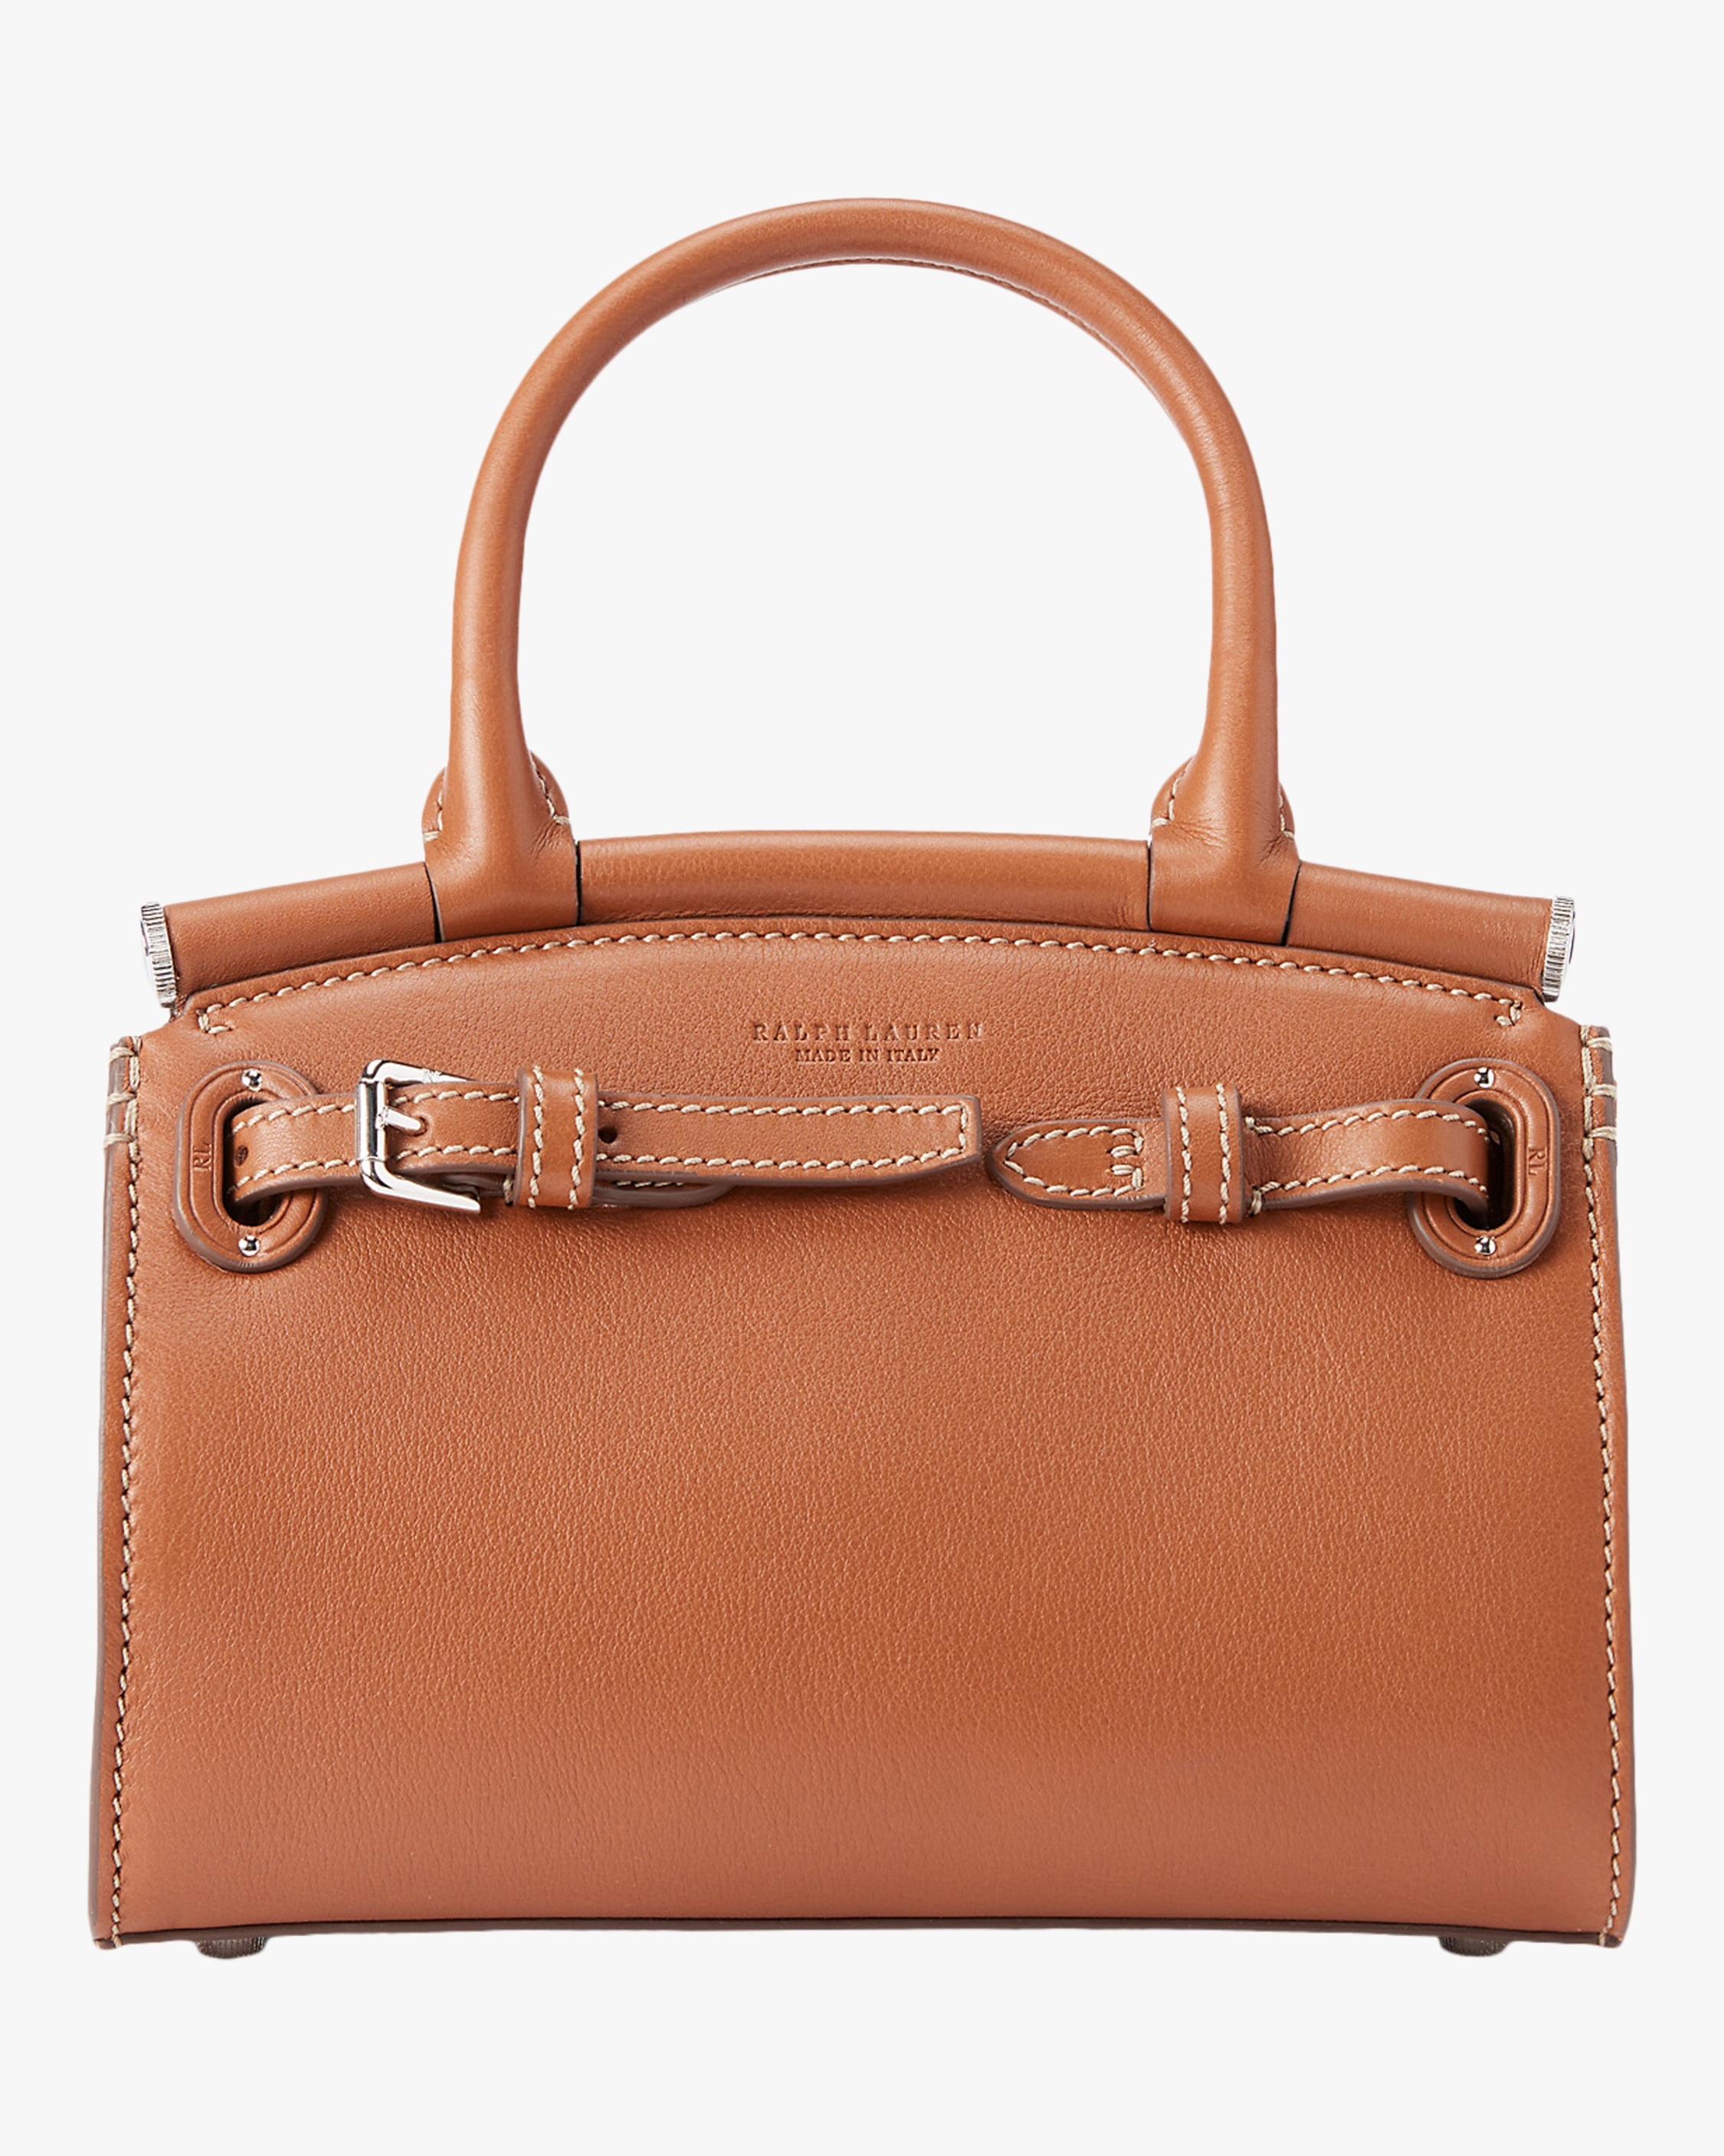 Ralph Lauren MINI RL50 LEATHER HANDBAG